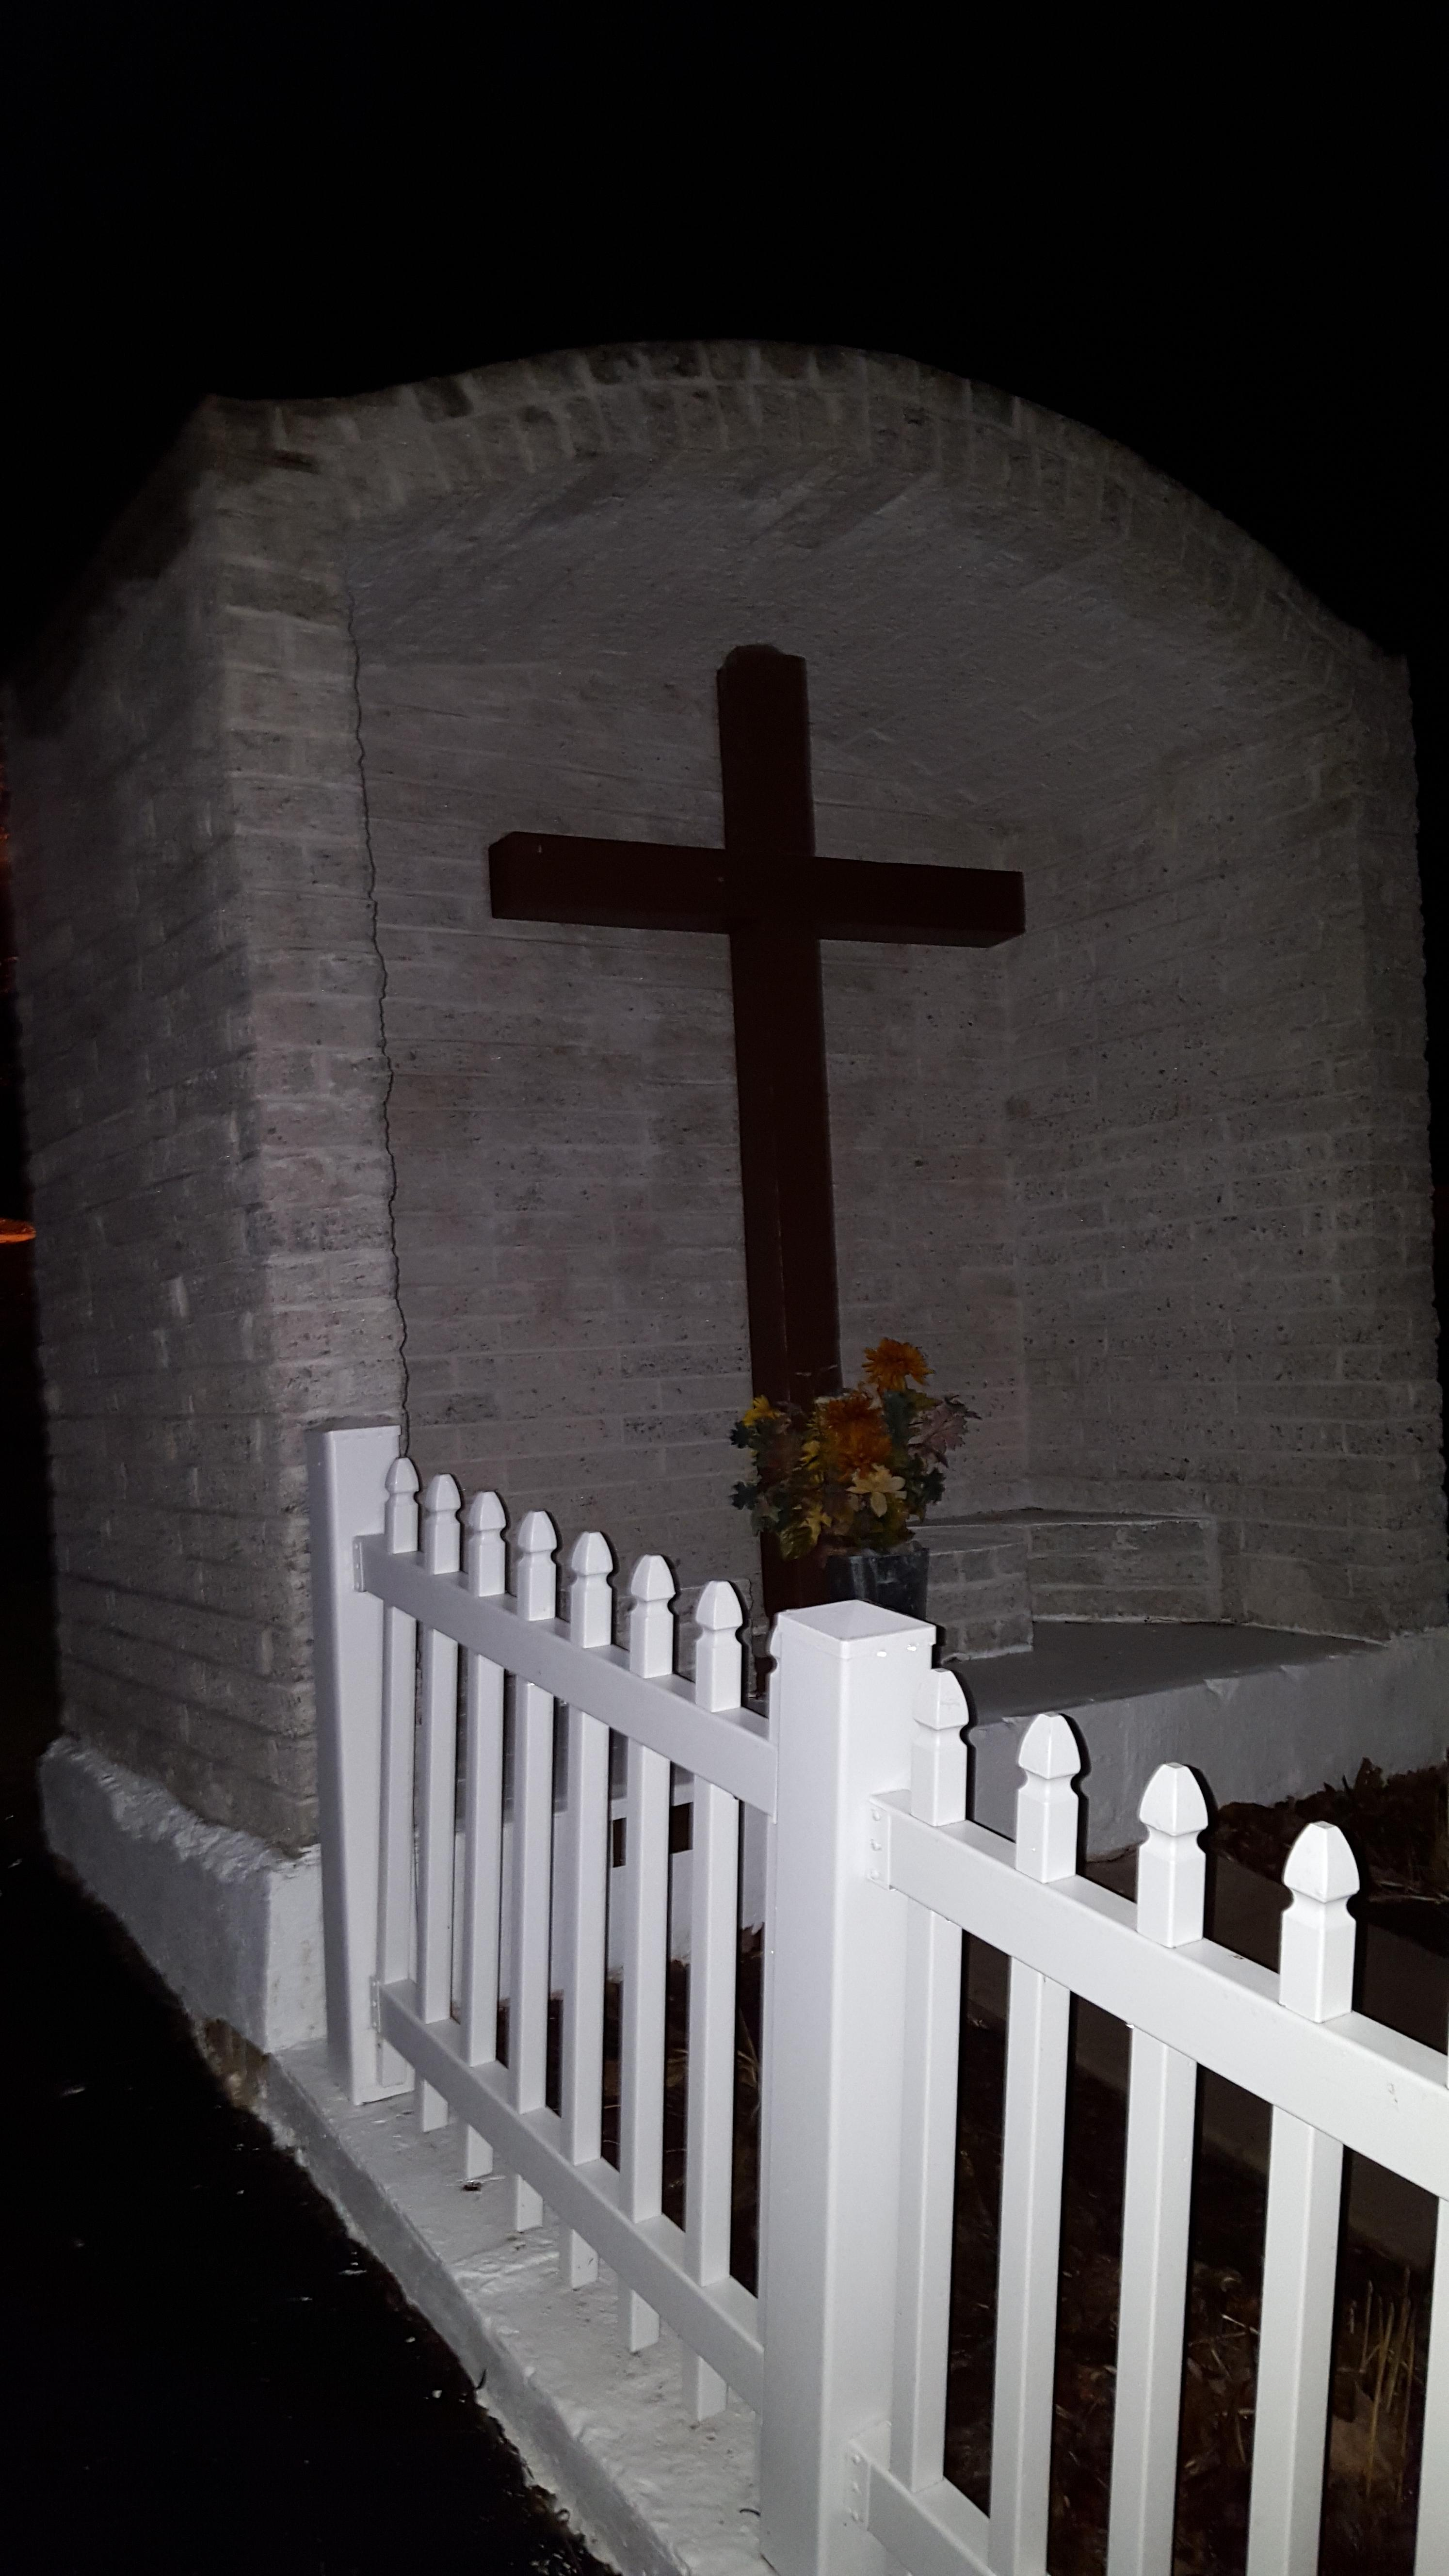 Cross outside the Assumption of the Blessed Virgin Mary